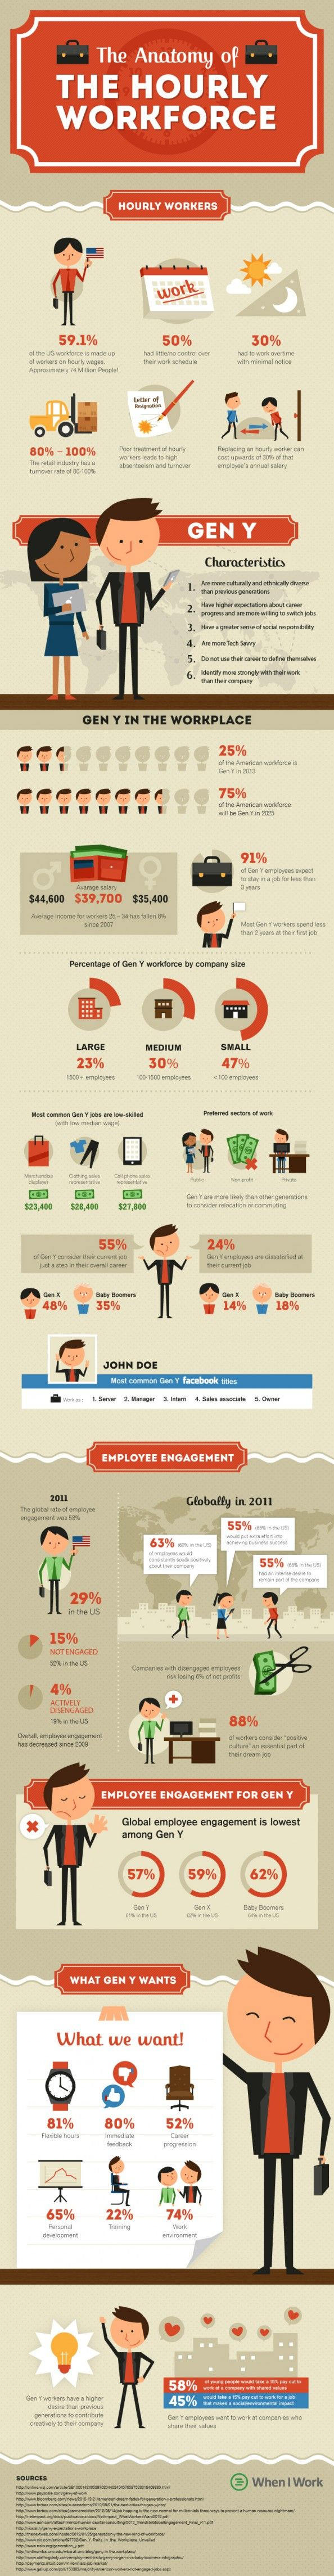 17 best images about millennials gen y in the workplace on anatomy of the hourly workforce gen y millennials in the workplace